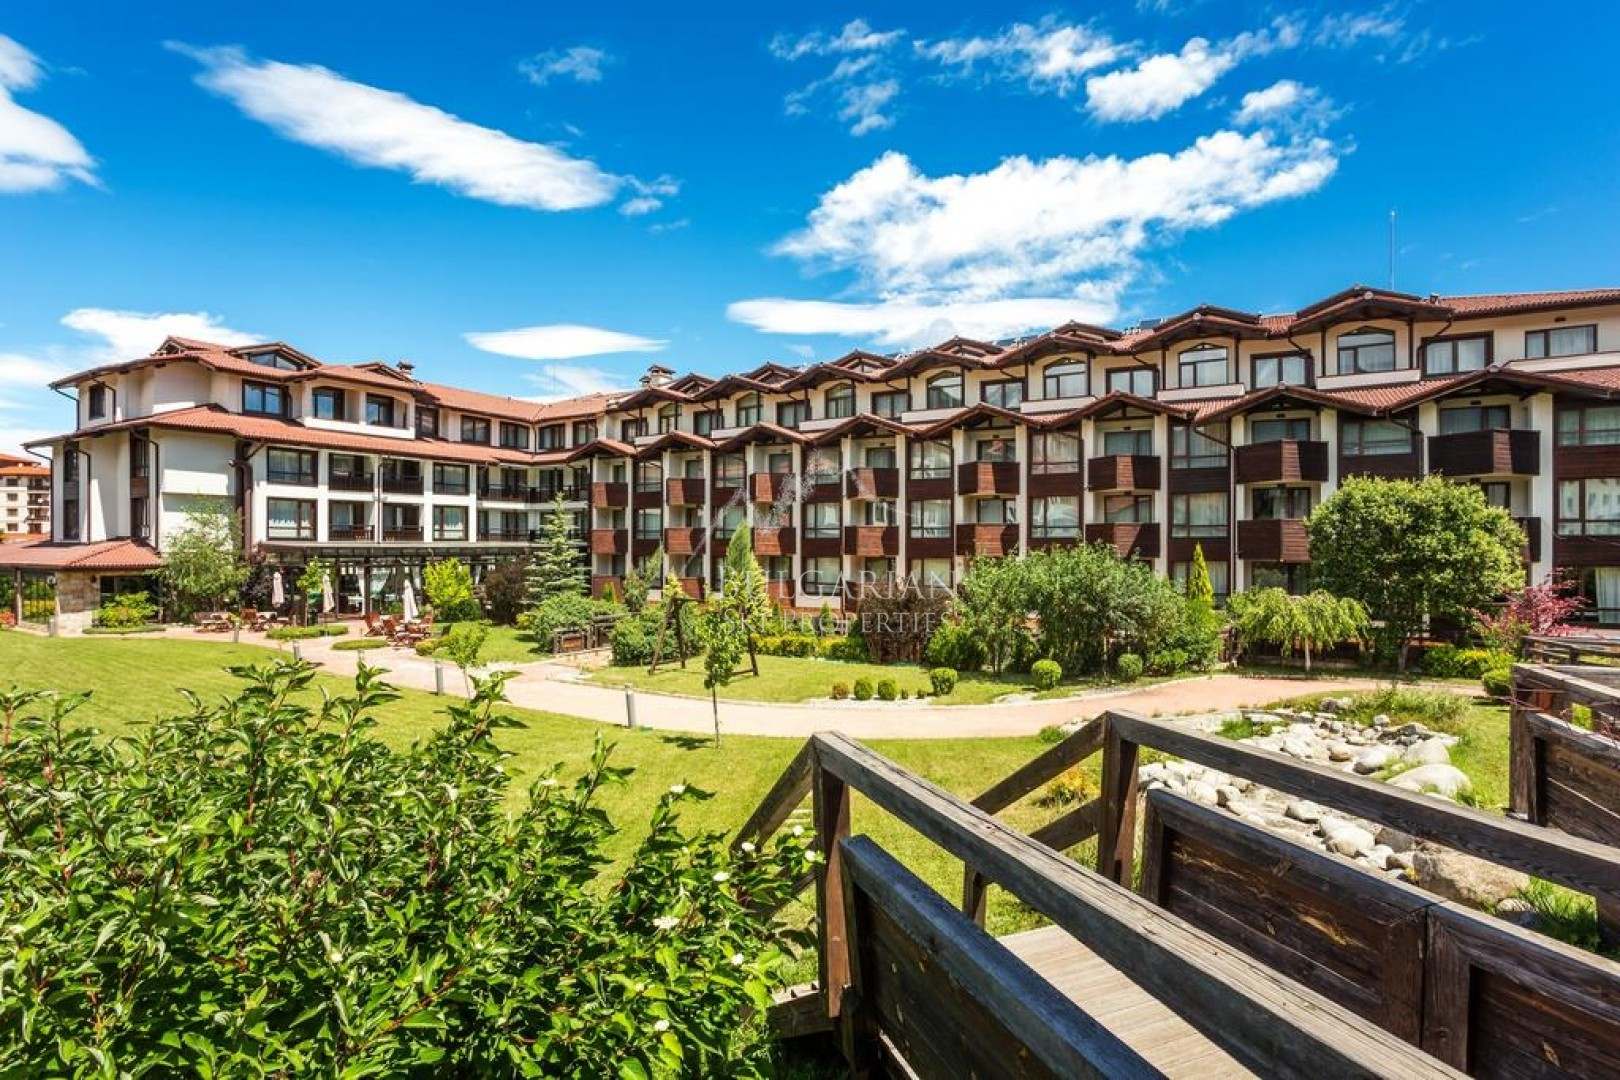 Perun Lodge, Bansko: bargain furnished one-bedroom apartment for sale